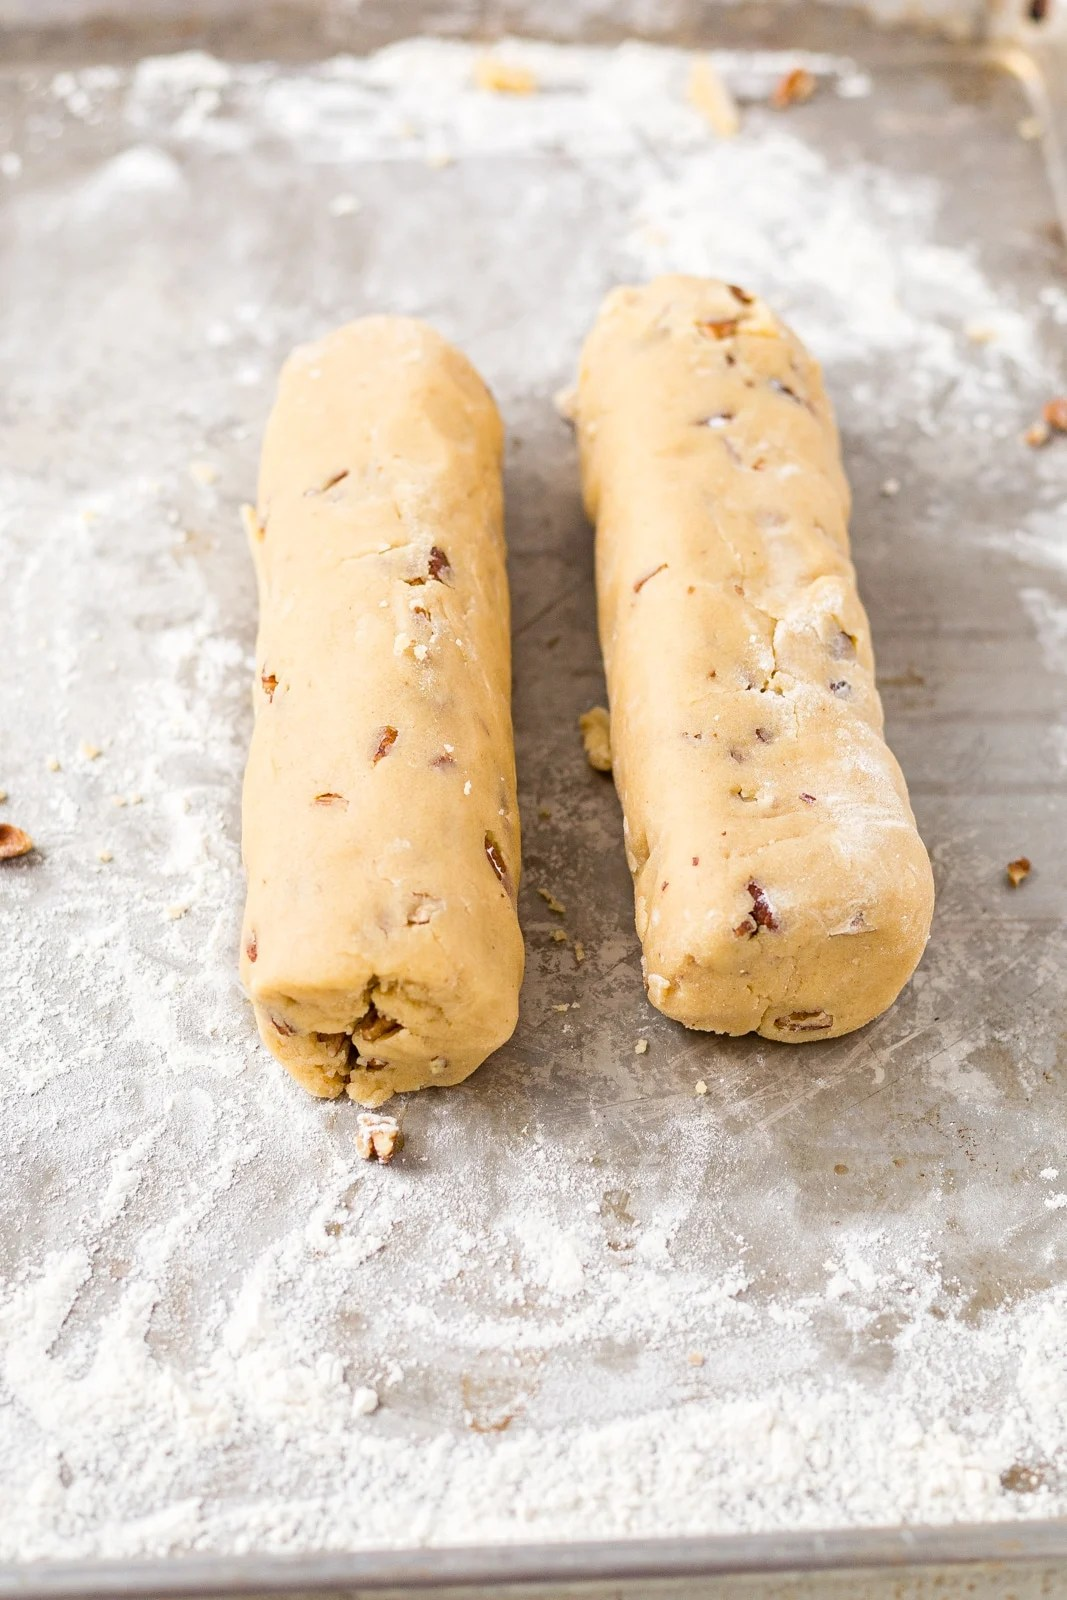 two logs of pecan shortbread dough on a baking sheet before chilling